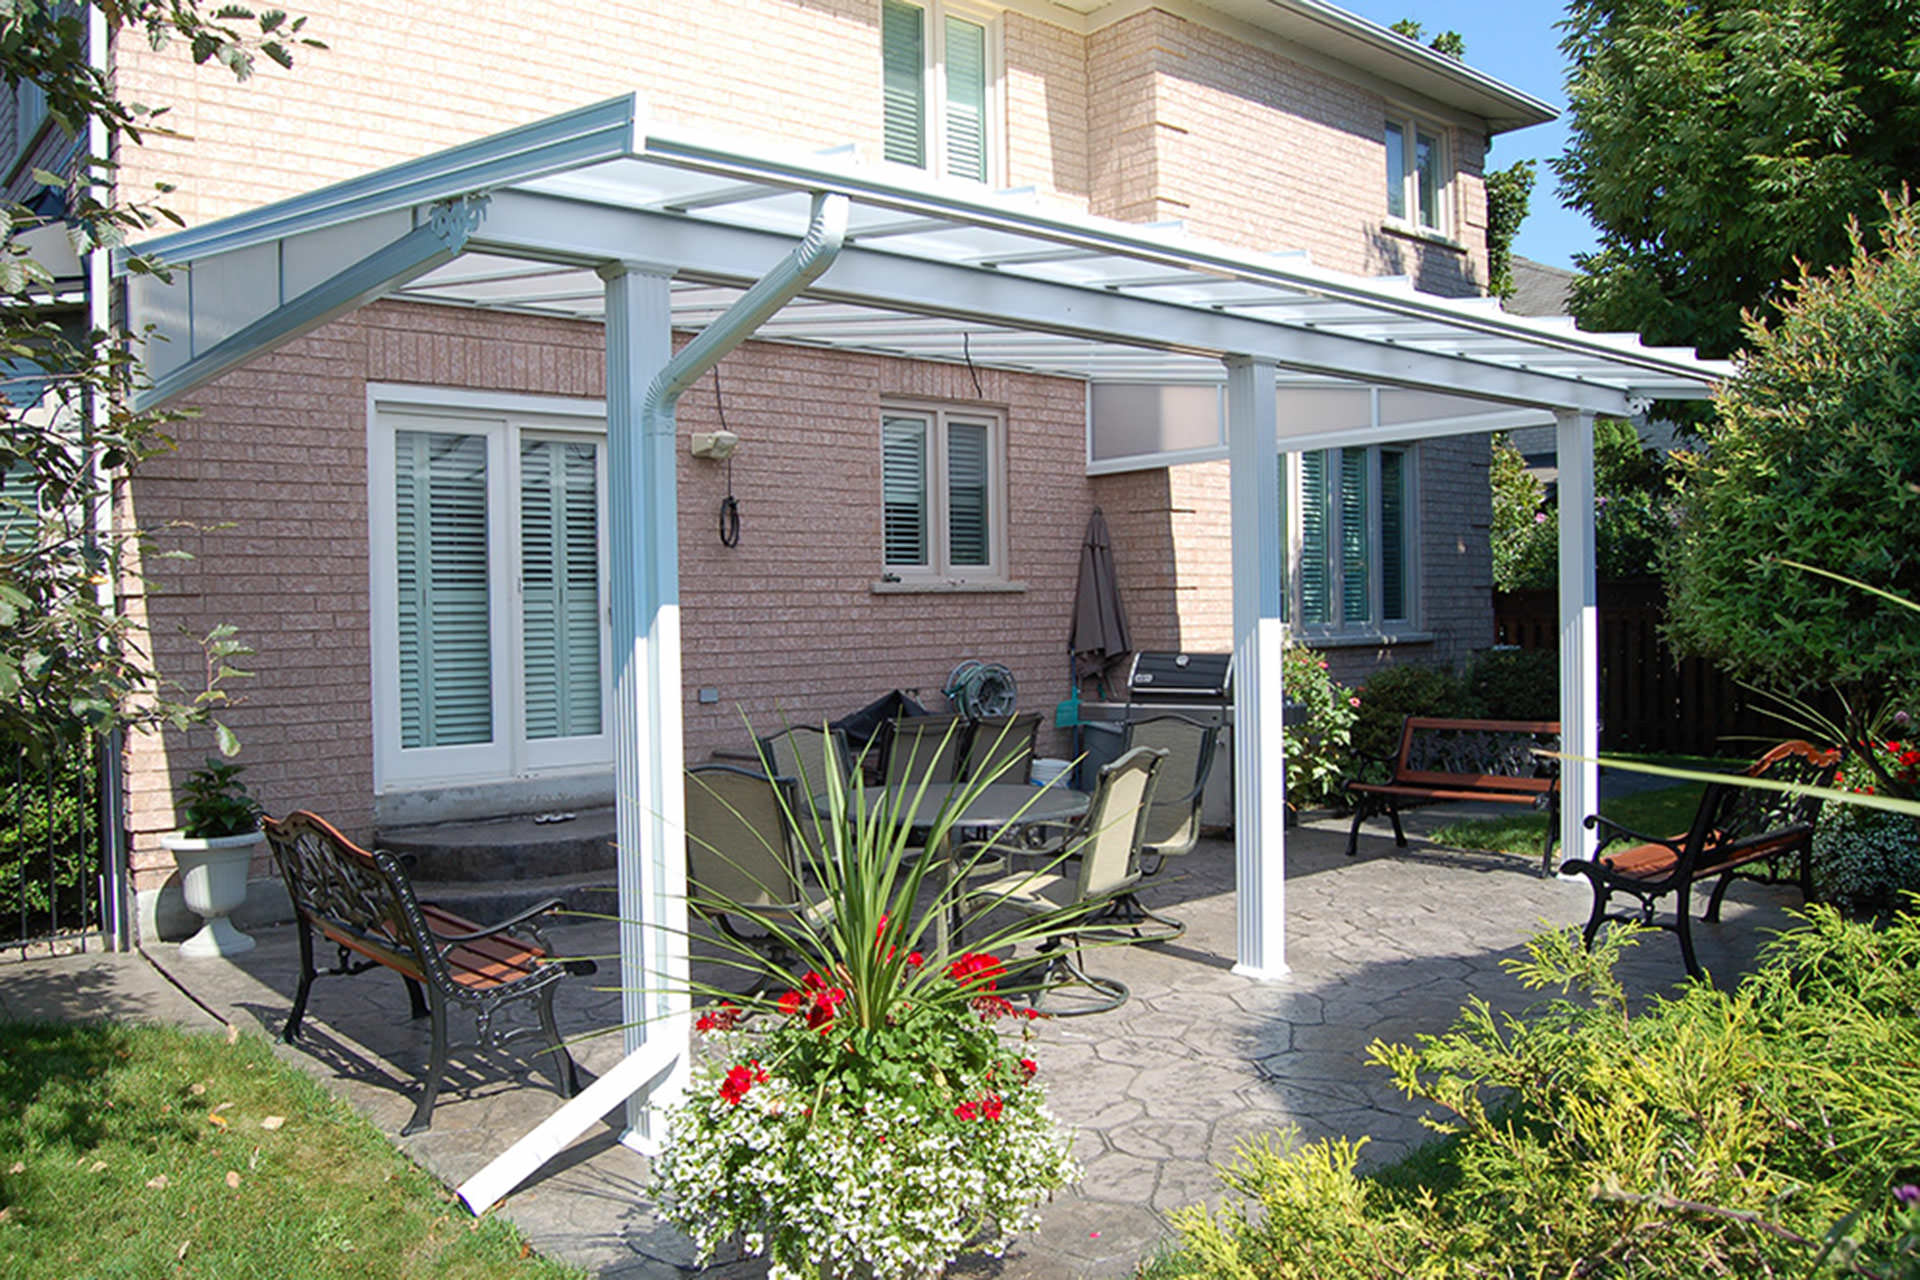 Patio Covers Extend A Magnitude Of Benefits To Homeowners. For One, They  Can Help You Save On Energy Costs; Adding Shade Around Your Home Helps It  Stay ...